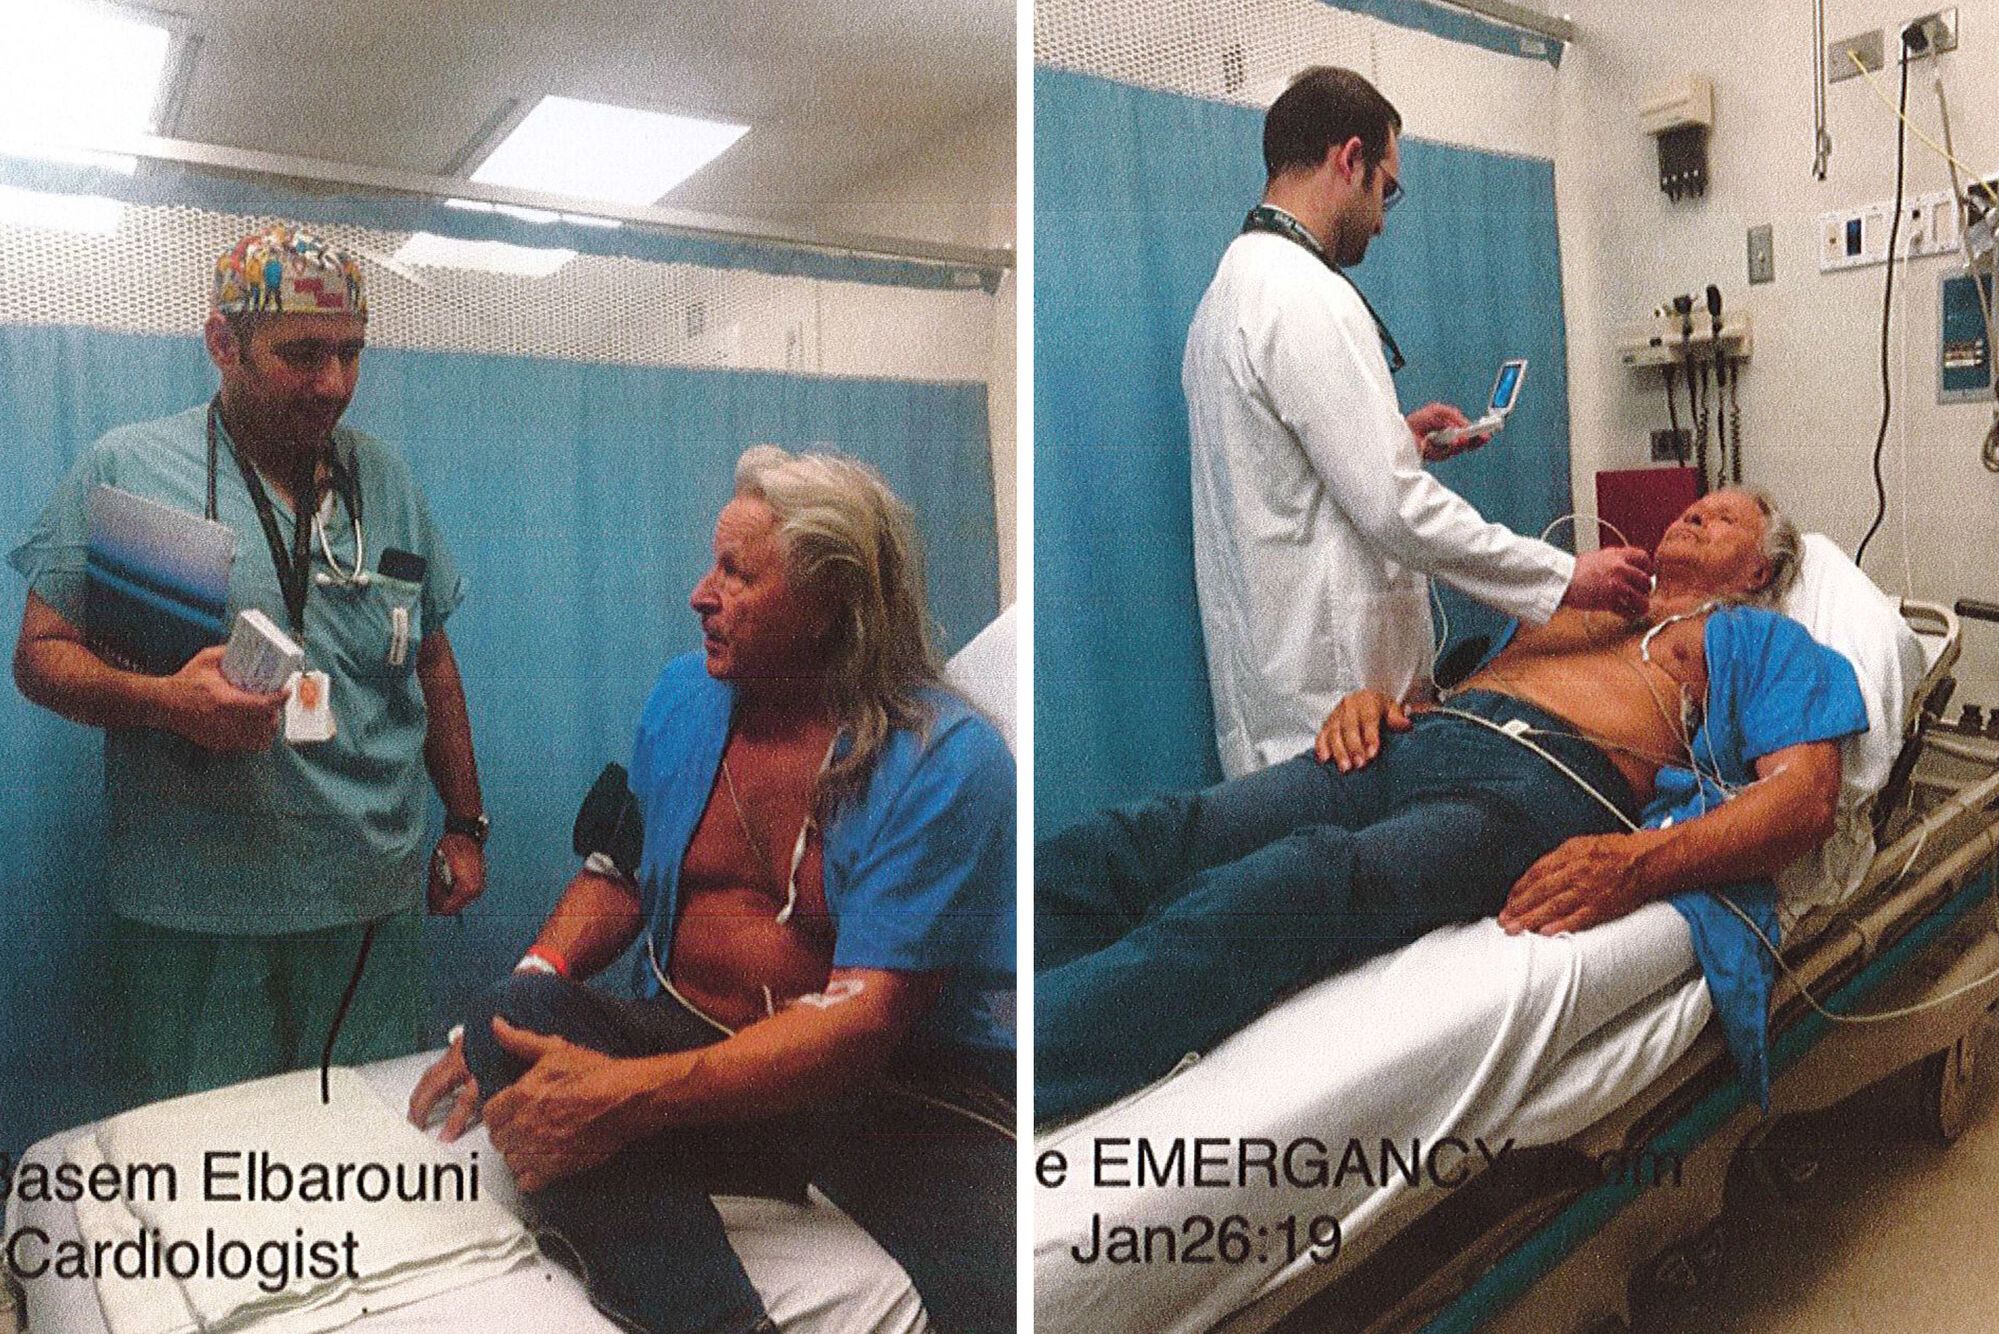 Photo exhibits submitted as part of the affidavit of Dr. Lynwood Brown in regards to Peter Nygard's health.